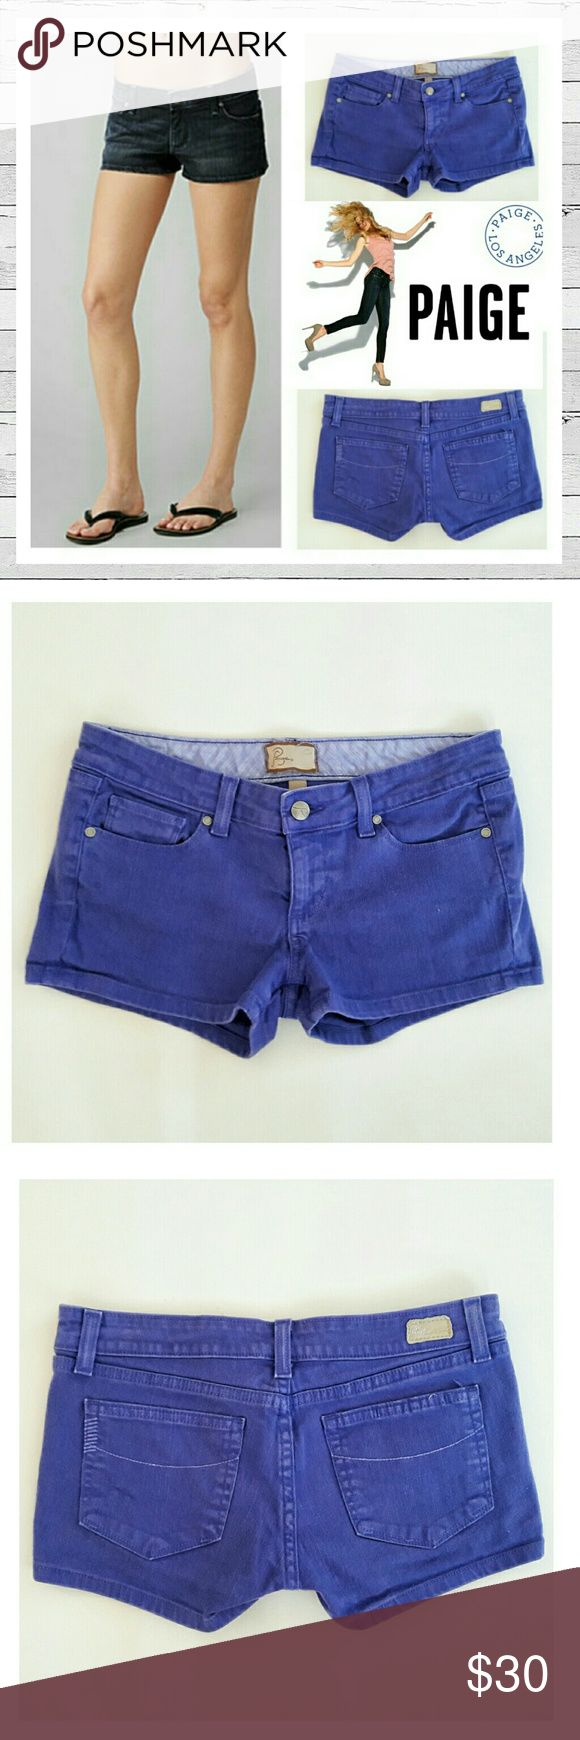 Paige Canyon Short In Purple Sz 27 Paige Premium Denim Canyon shory in purple!! Excellent previously loved condition. Sz 27. Bundle and save! Sorry no trades. Paige Jeans Shorts Jean Shorts